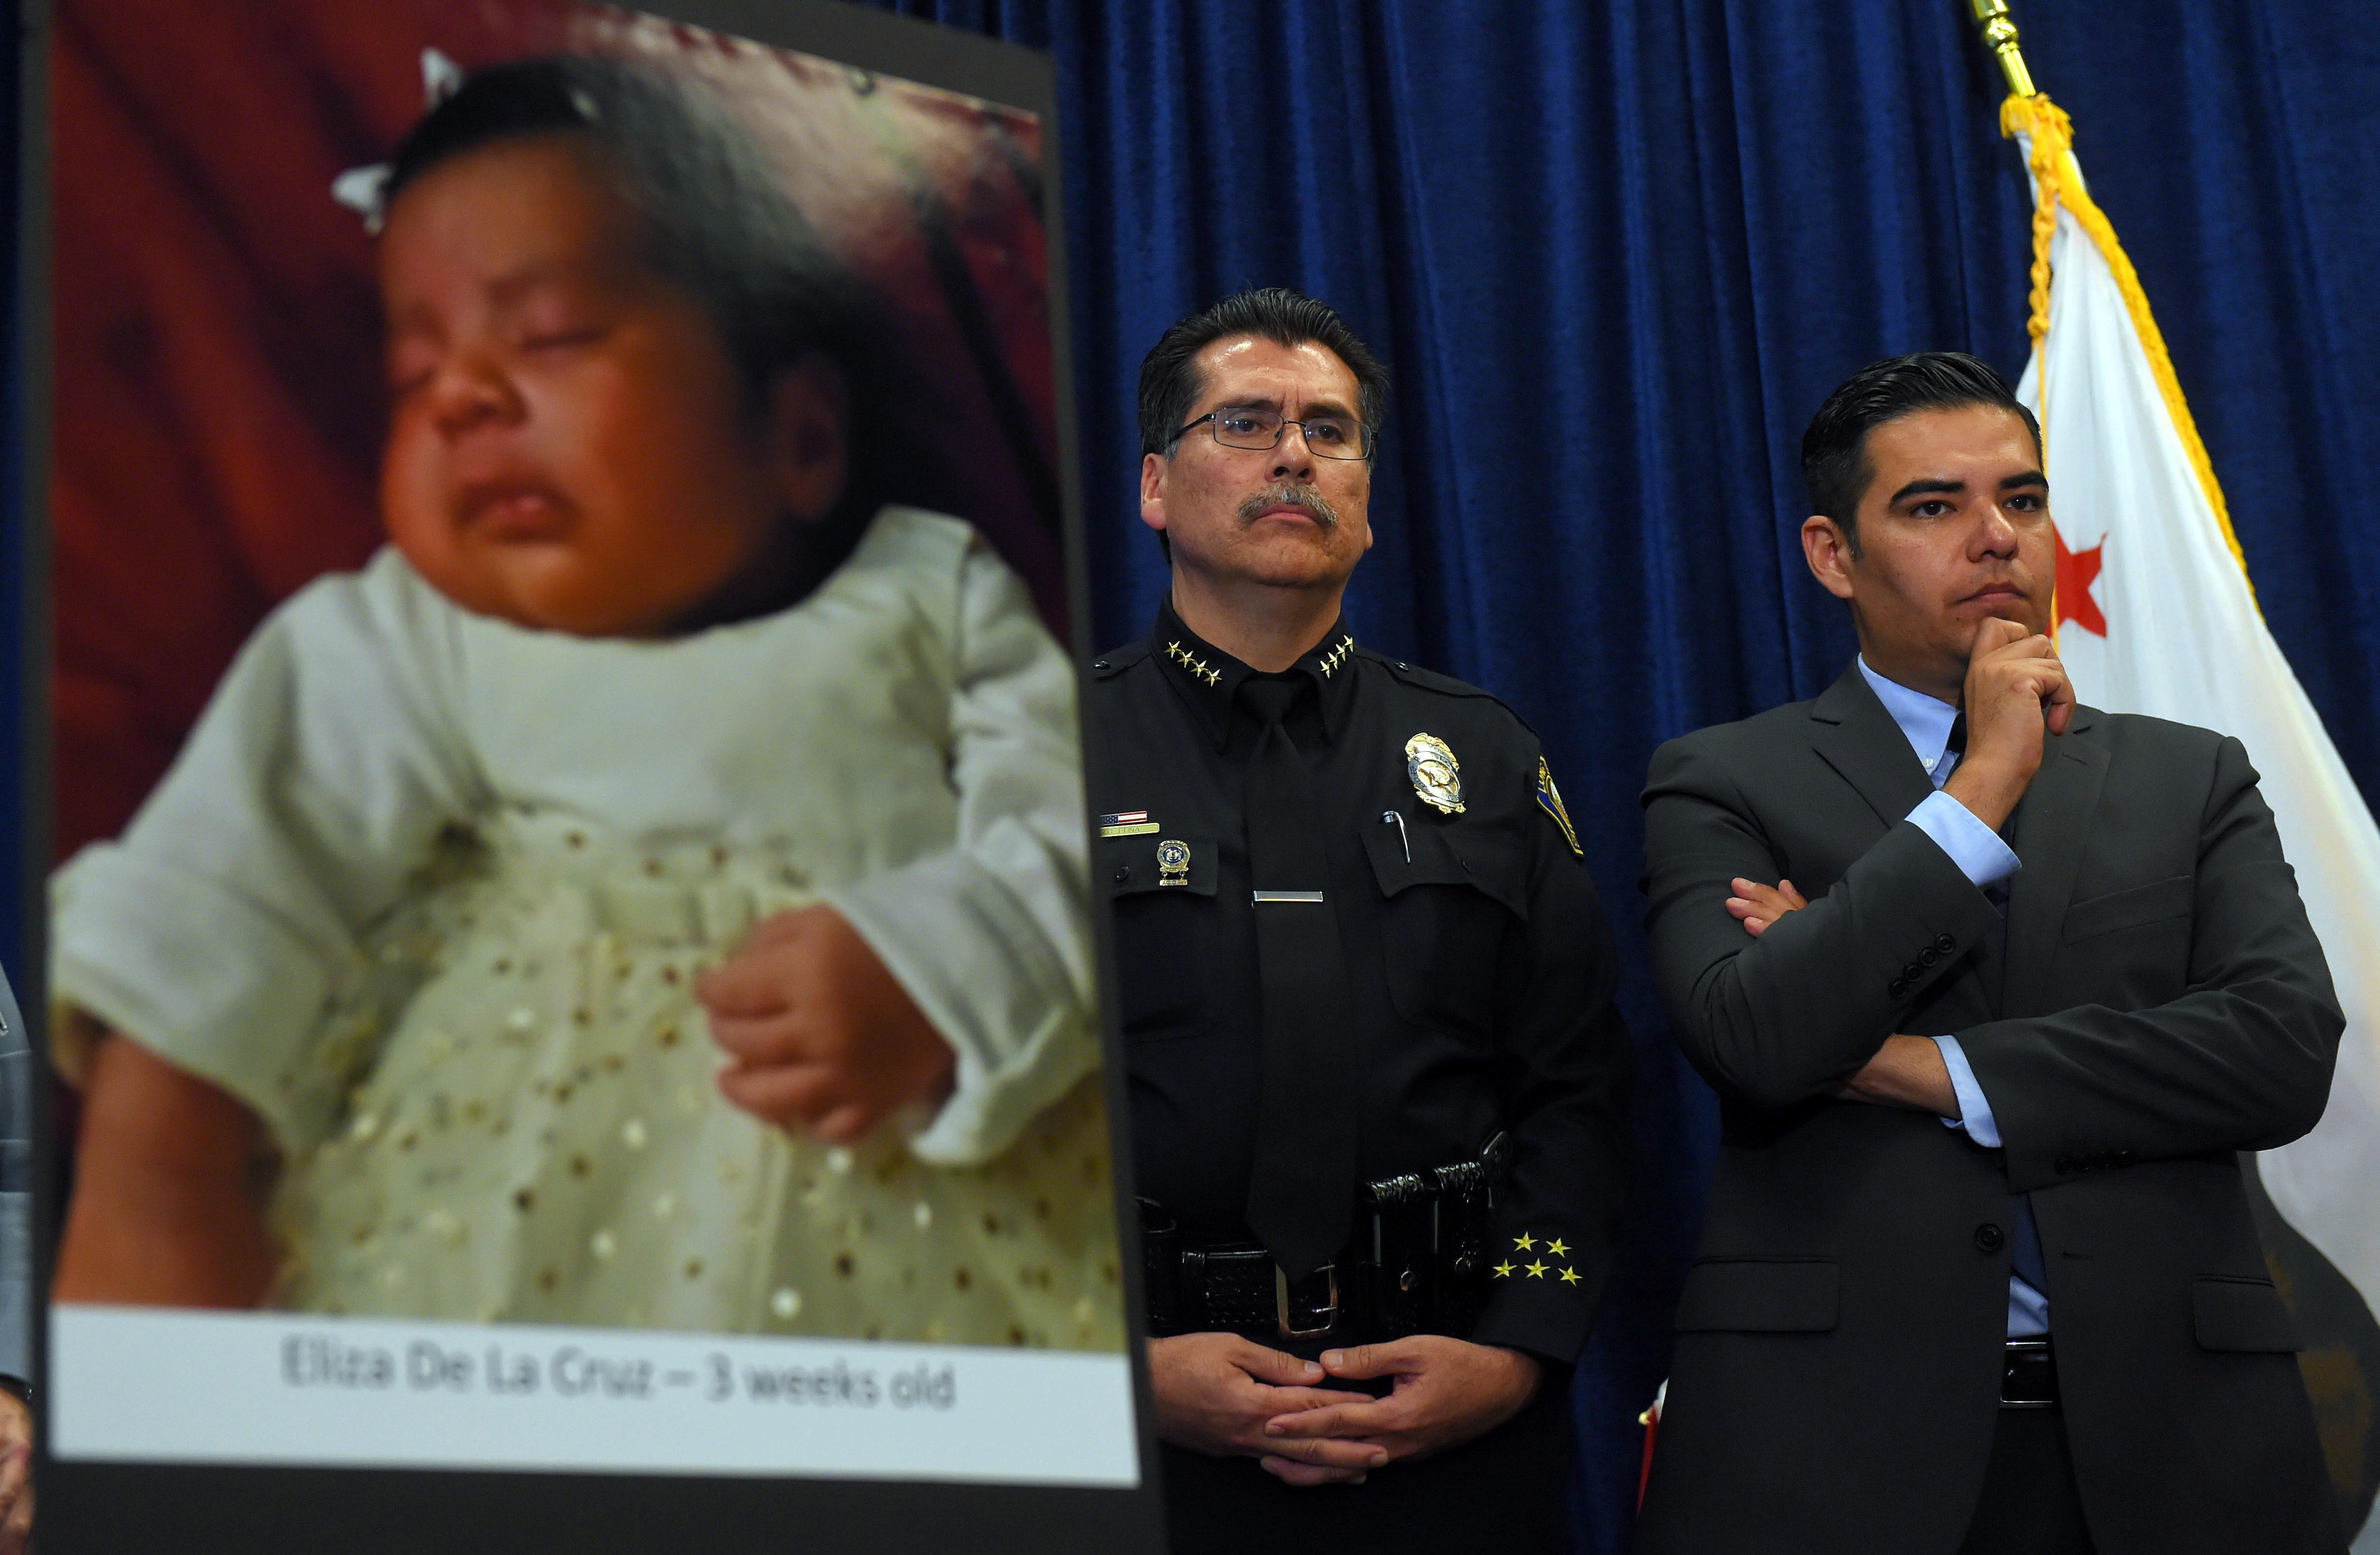 2 charged with murder, kidnapping in alleged baby-theft plot